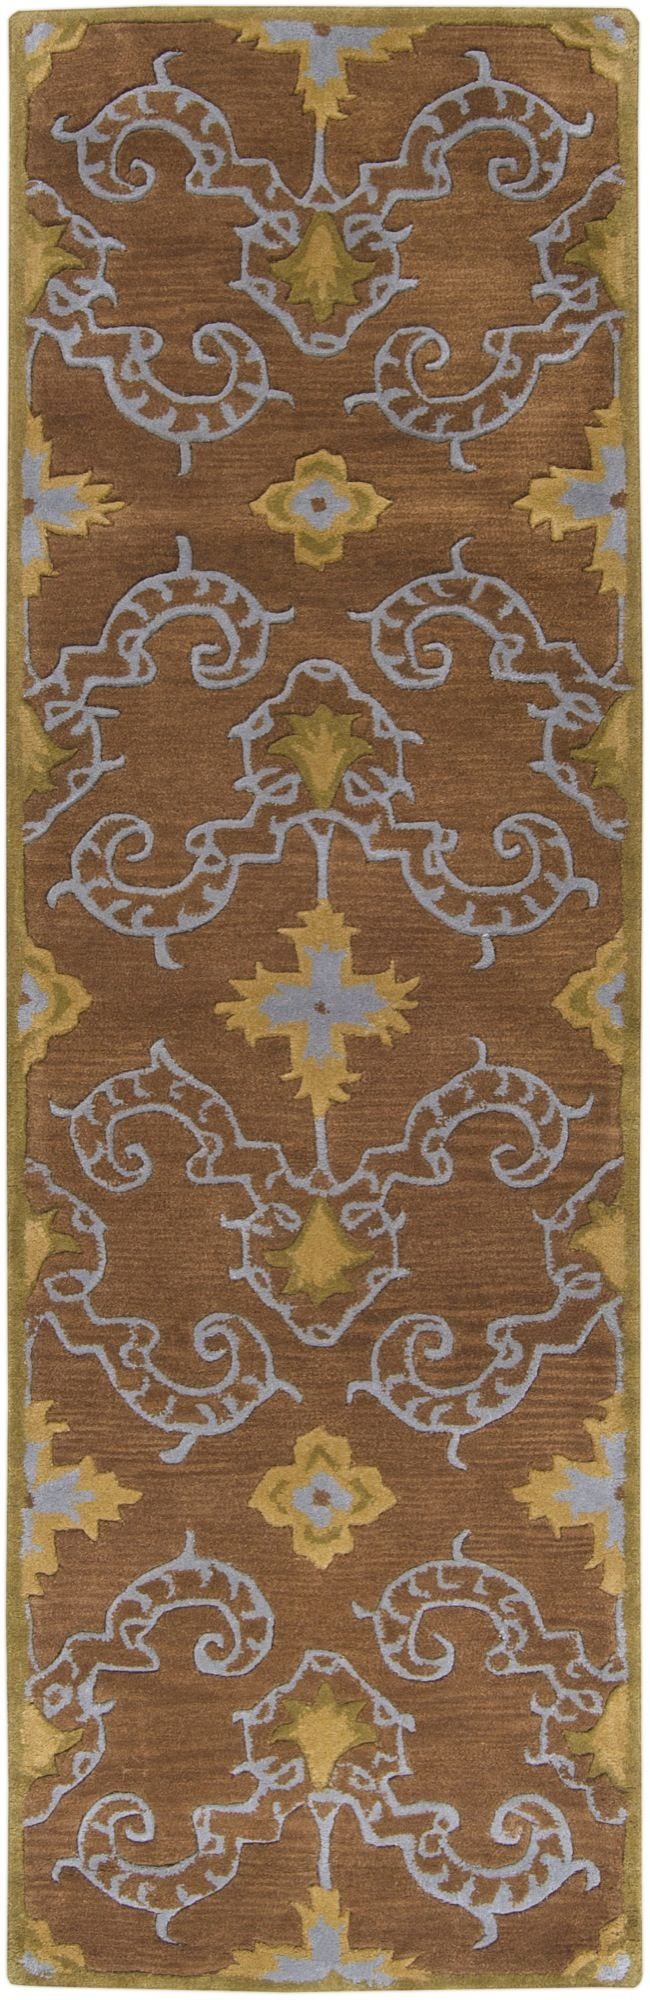 surya sea contemporary area rug collection